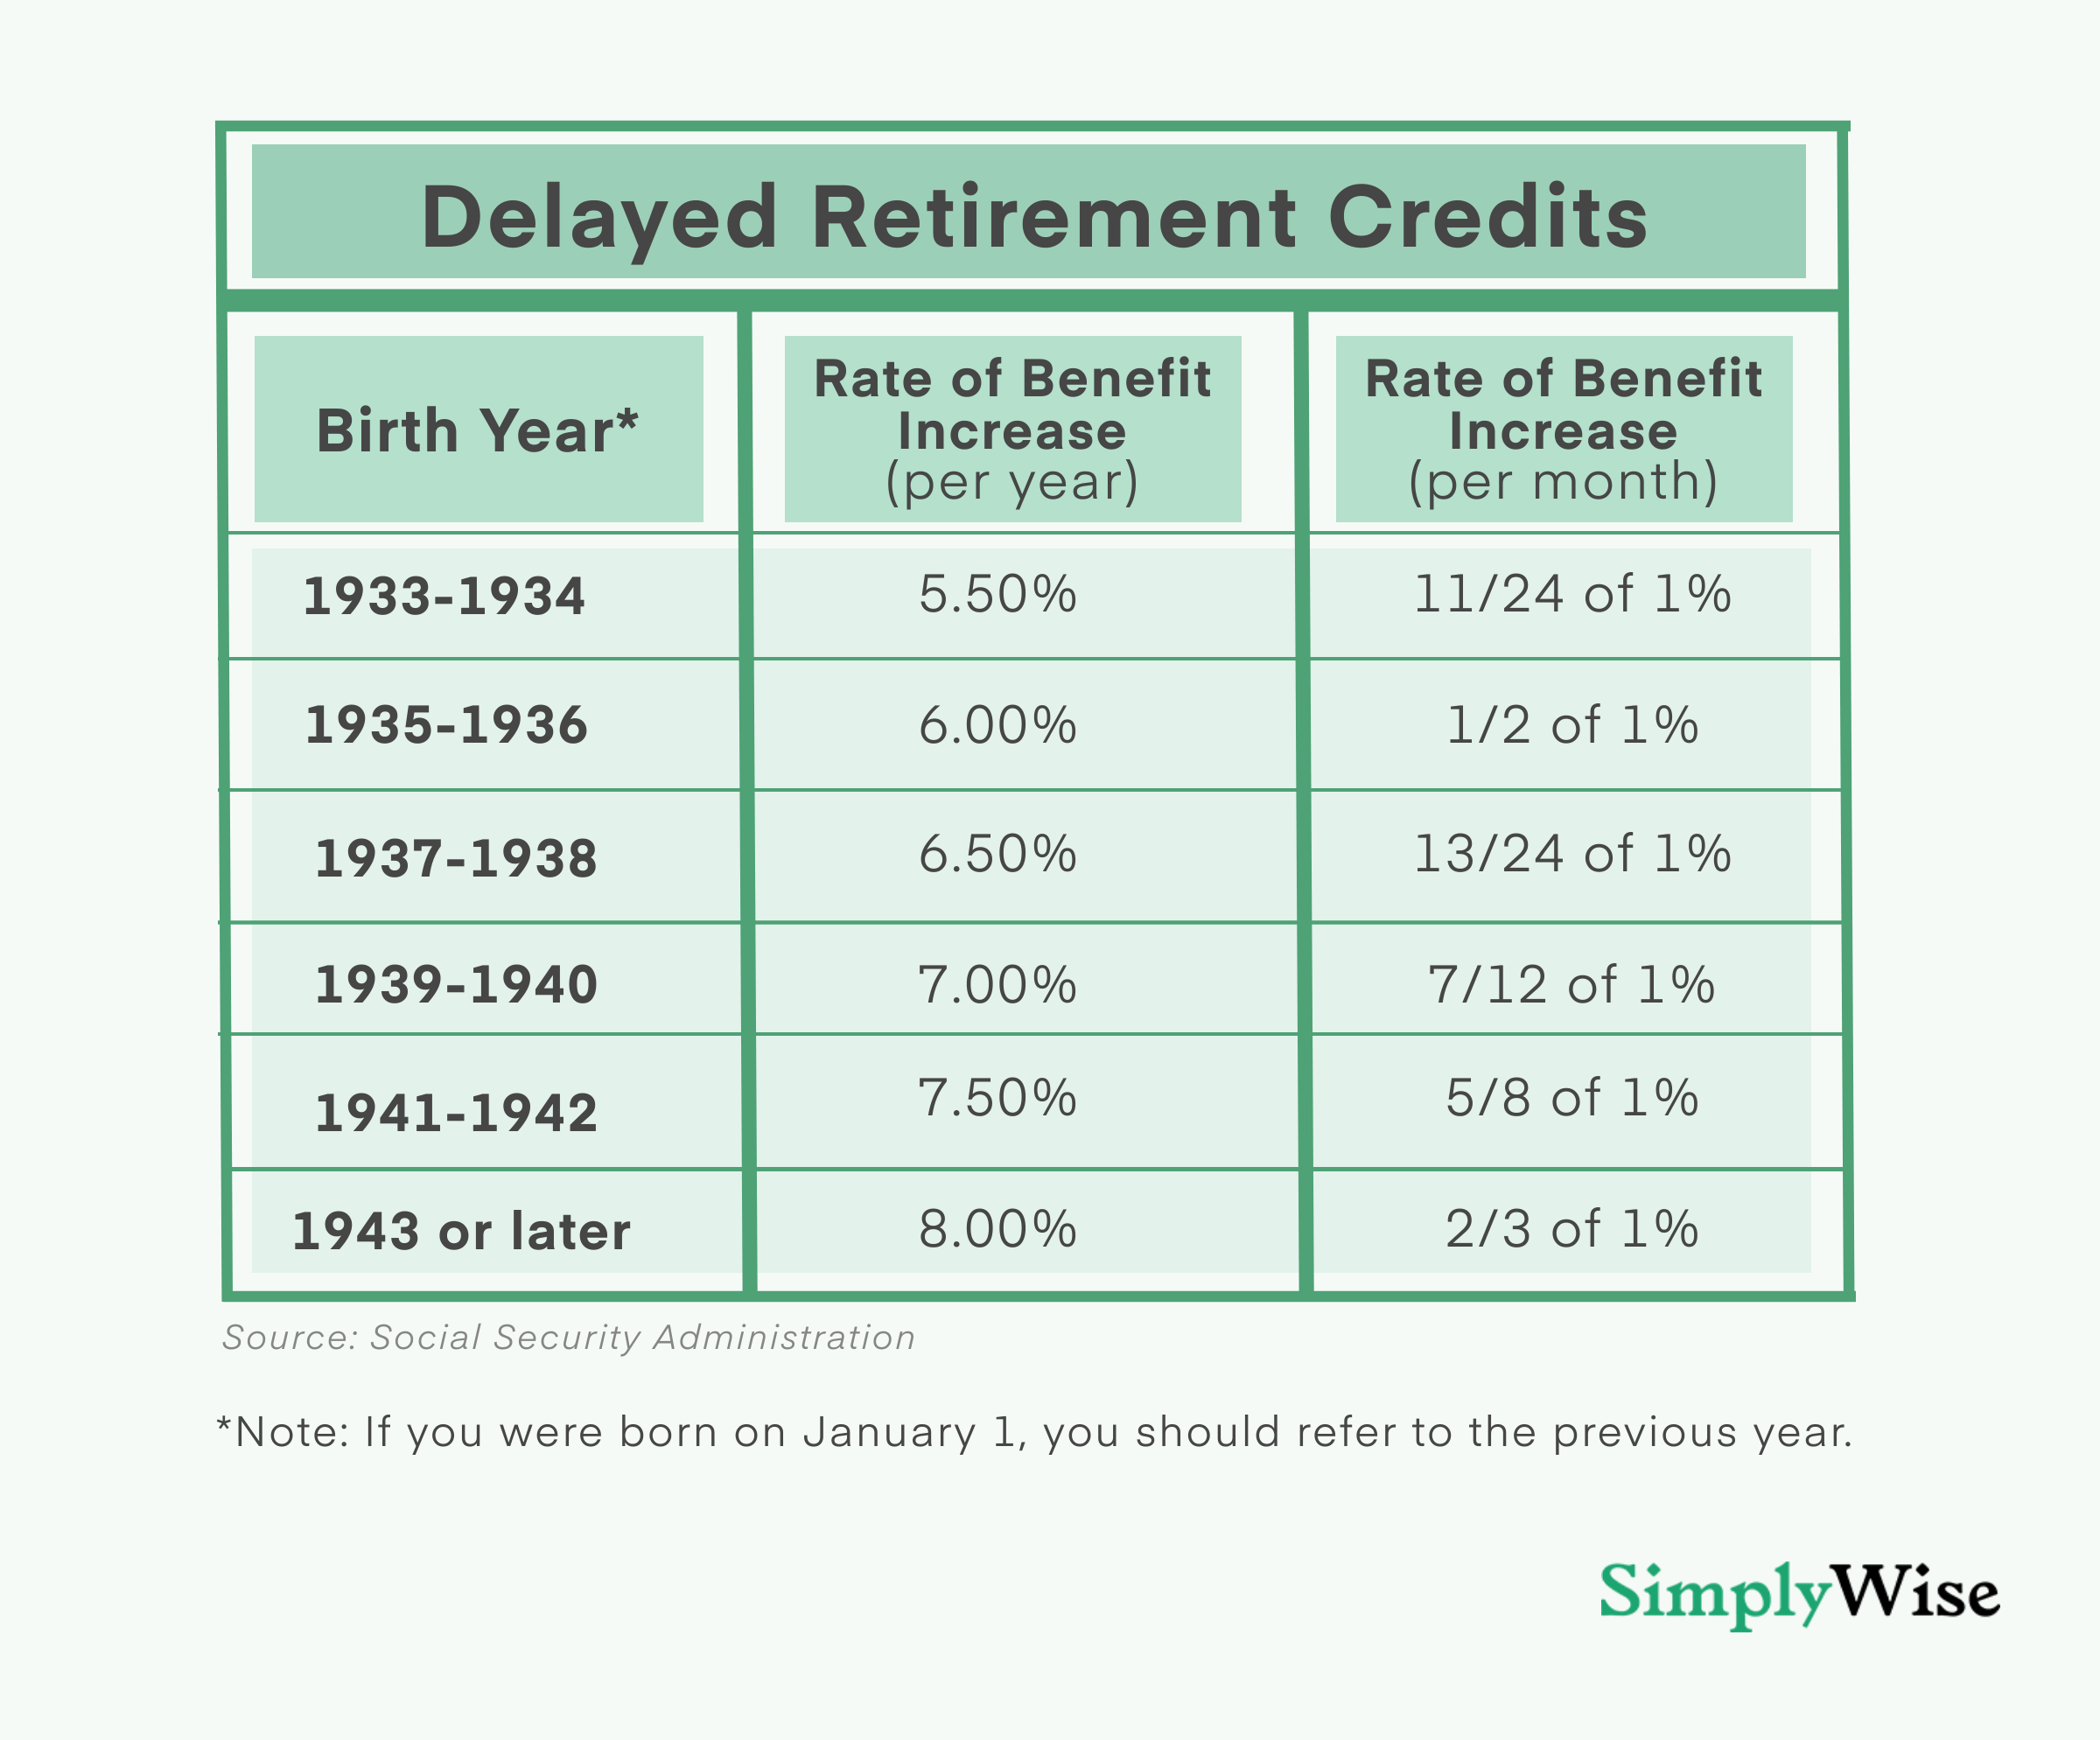 when are Delayed Retirement Credits paid